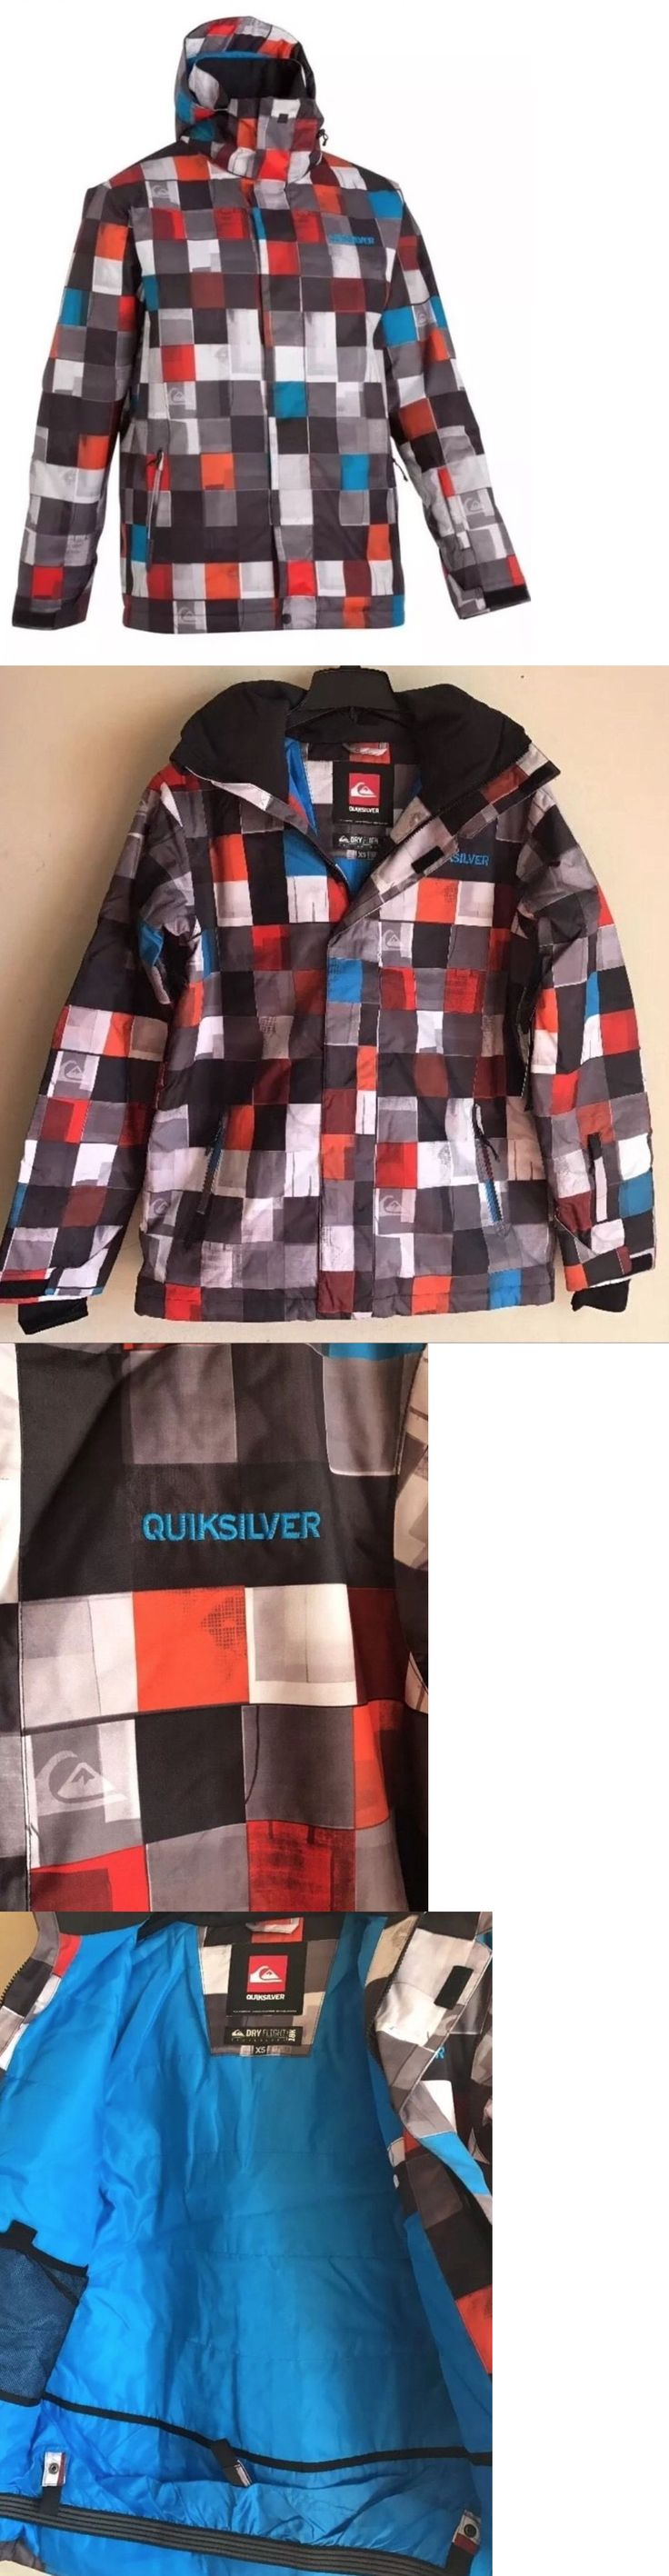 Coats and Jackets 26346: New Mens Quiksilver 10K Snow Jacket Ski Checkered Black Red Size Xs S M L Xl -> BUY IT NOW ONLY: $38.99 on eBay!